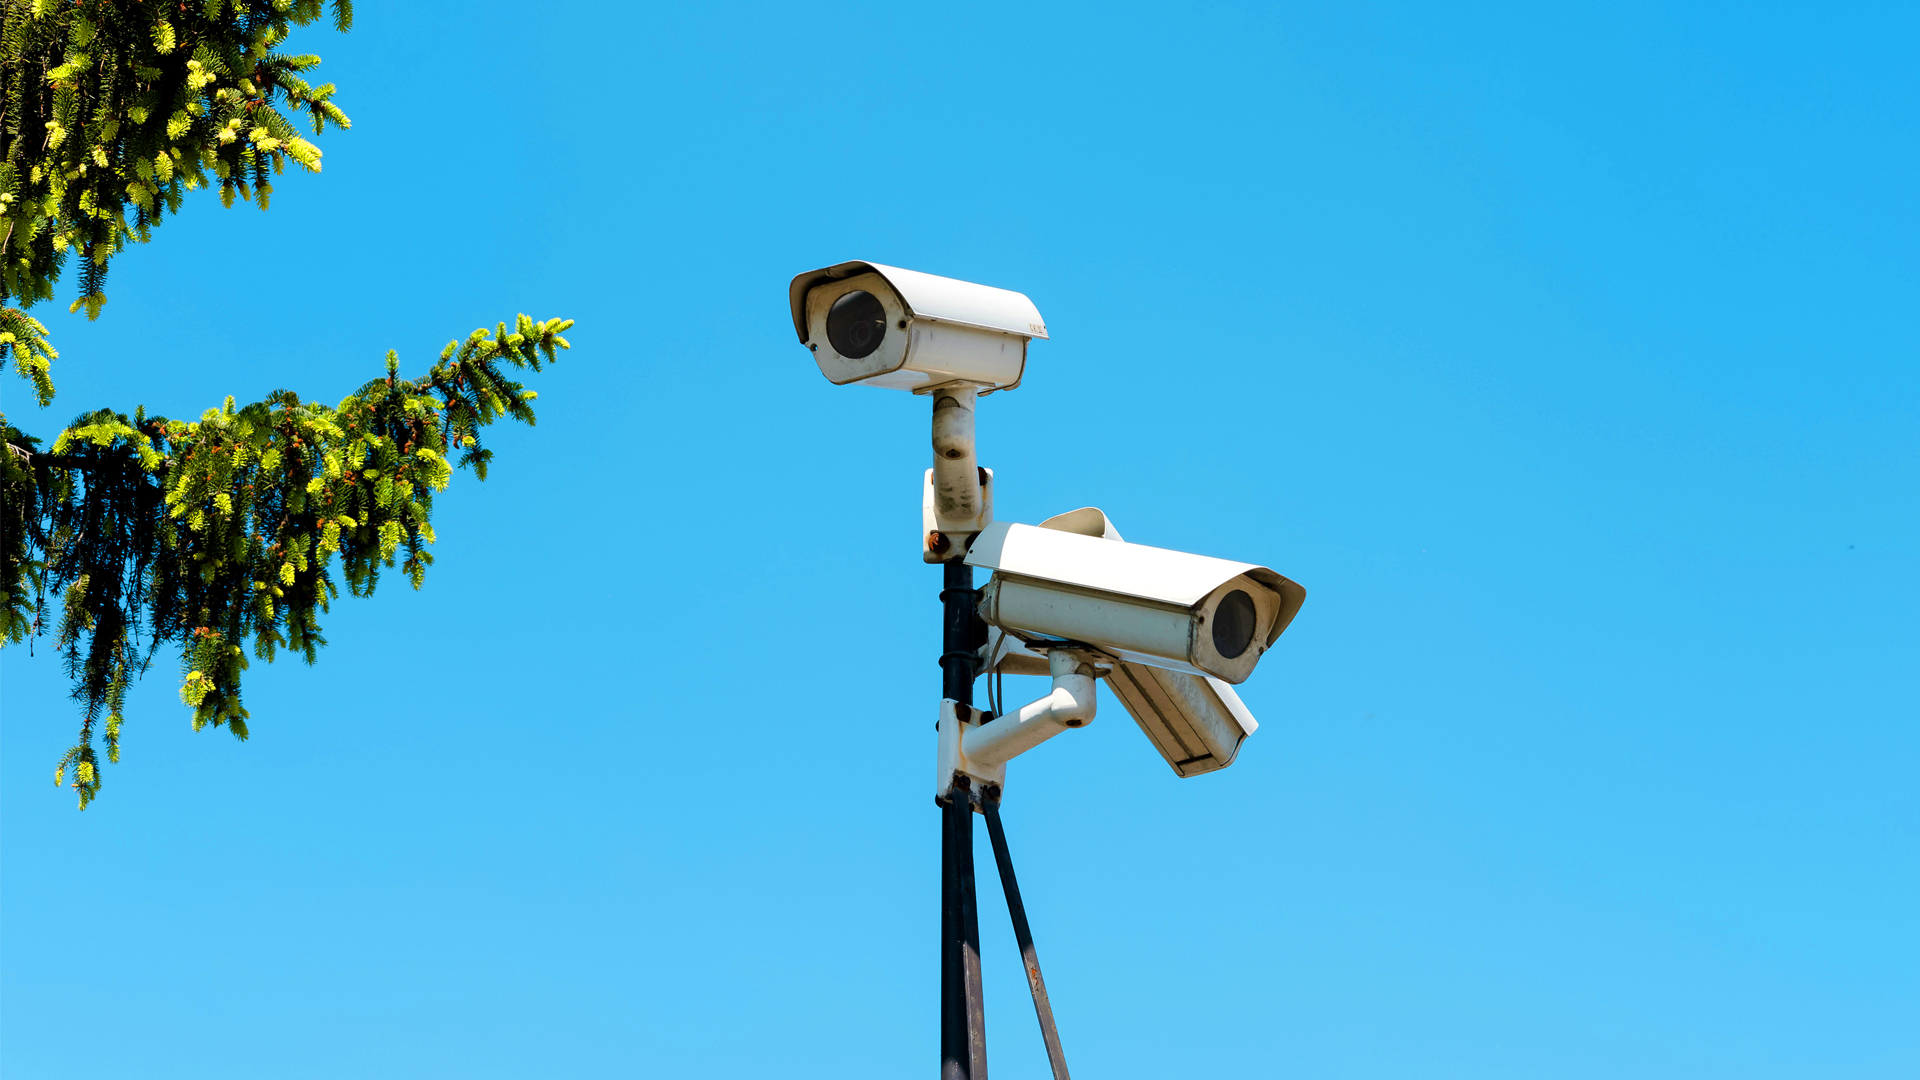 Activists Decry Police Use of Facial Recognition Cameras To Protect Women